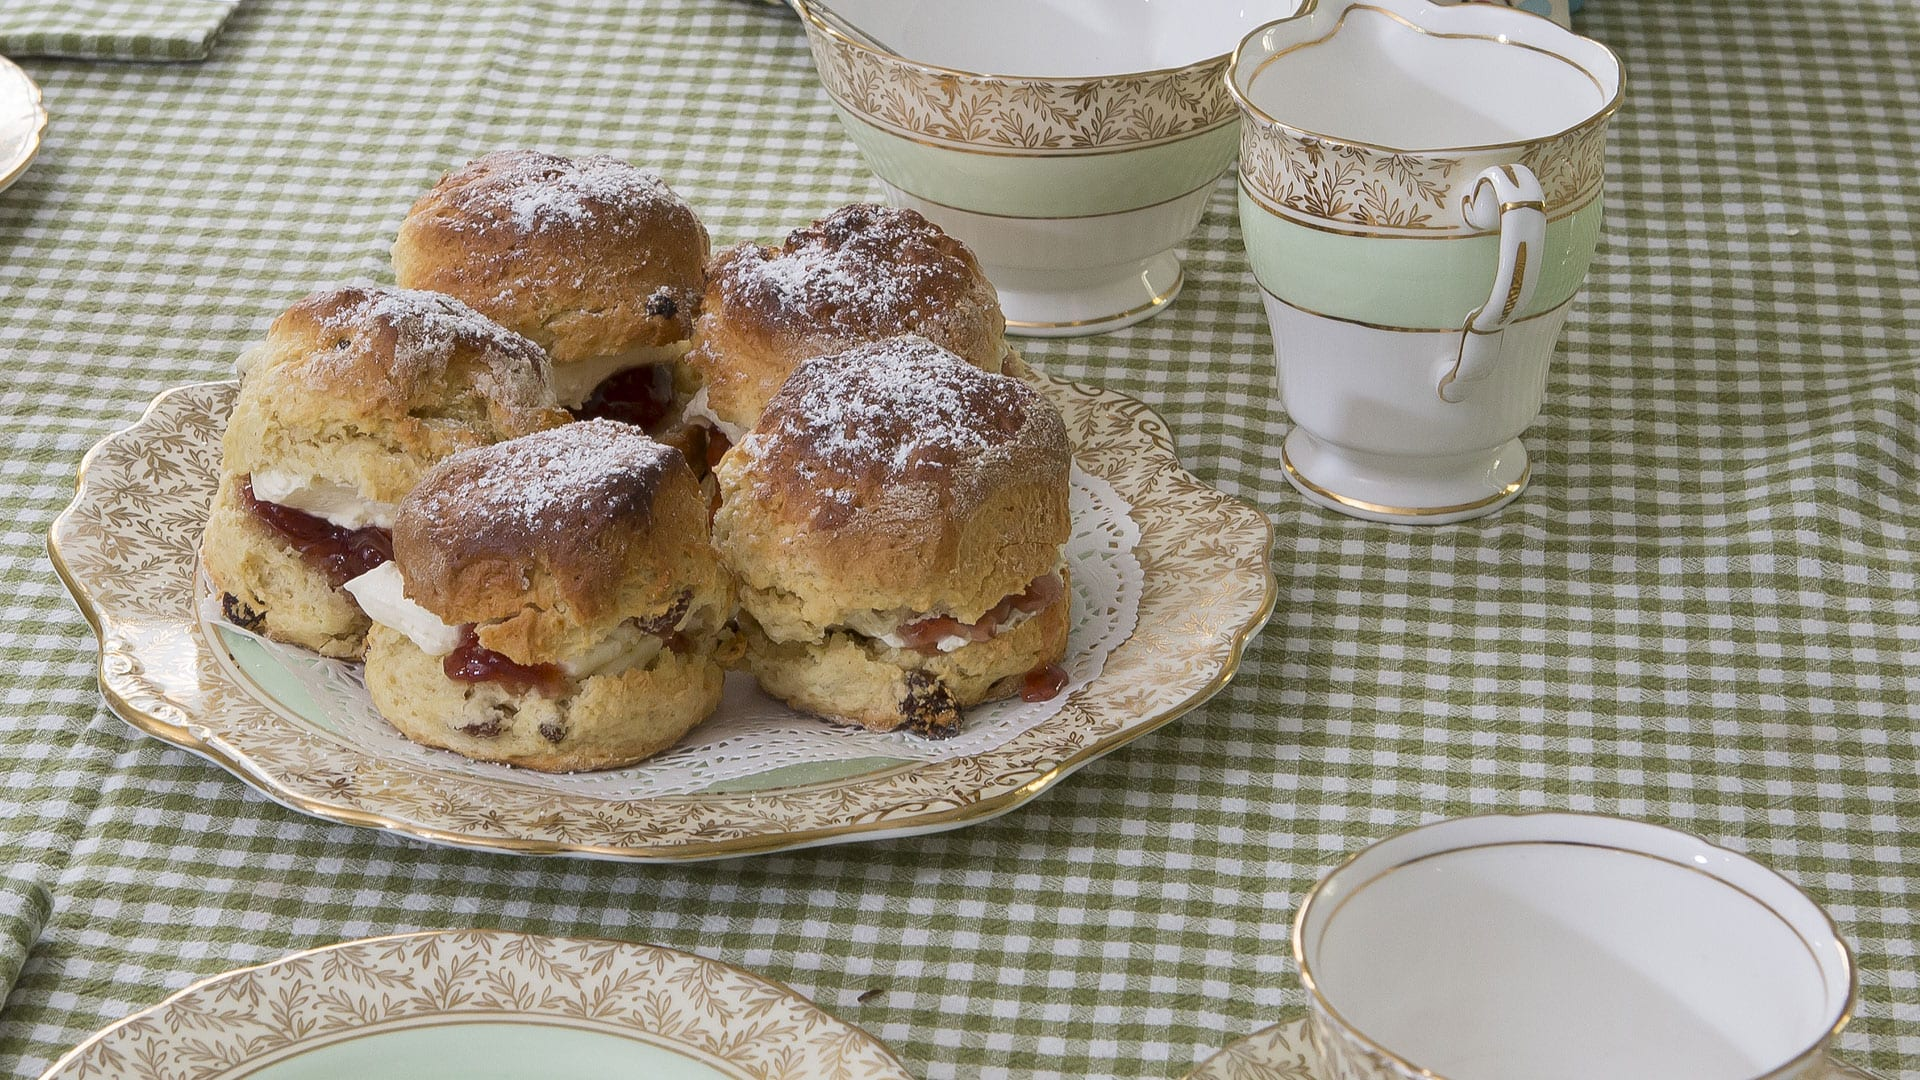 Tea-Cups-Scones-Jam-Preserves-Kitchen--Holiday-Homes-Ireland-Meath-Dunshaughlin-Self-Catering